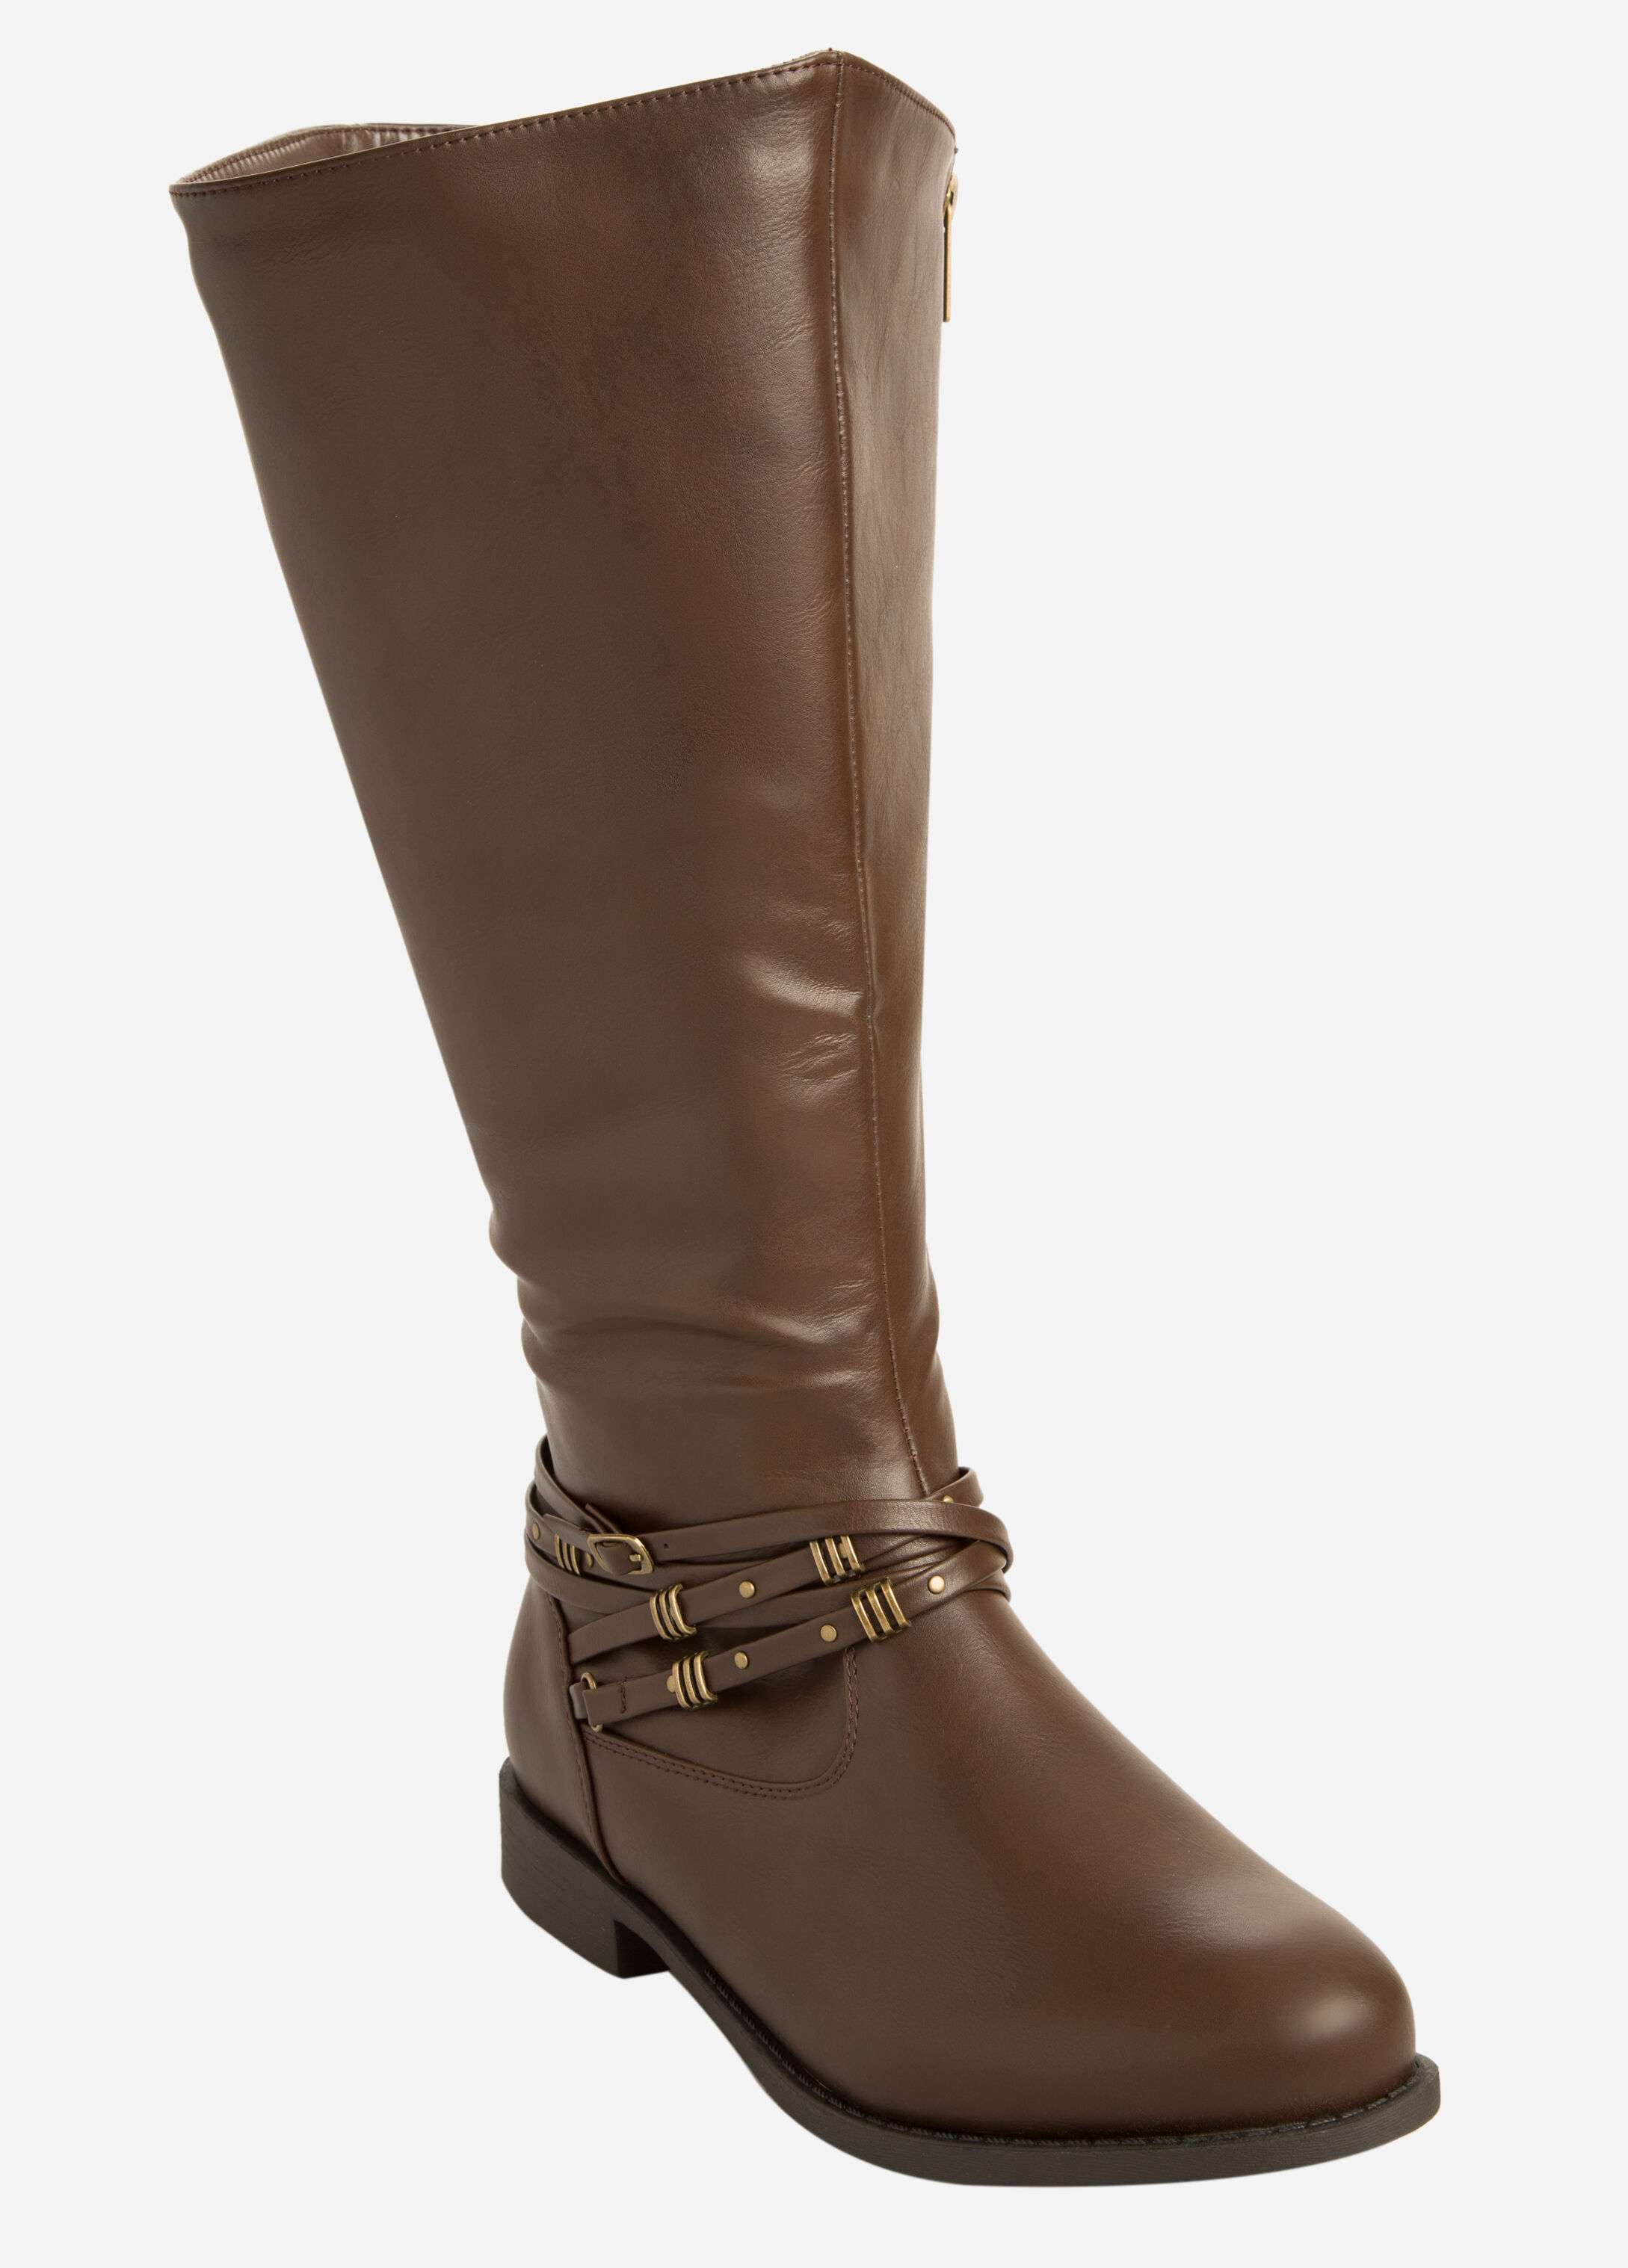 Studded Buckle Front Flat Boot - Extra Wide Width - Wide Calf